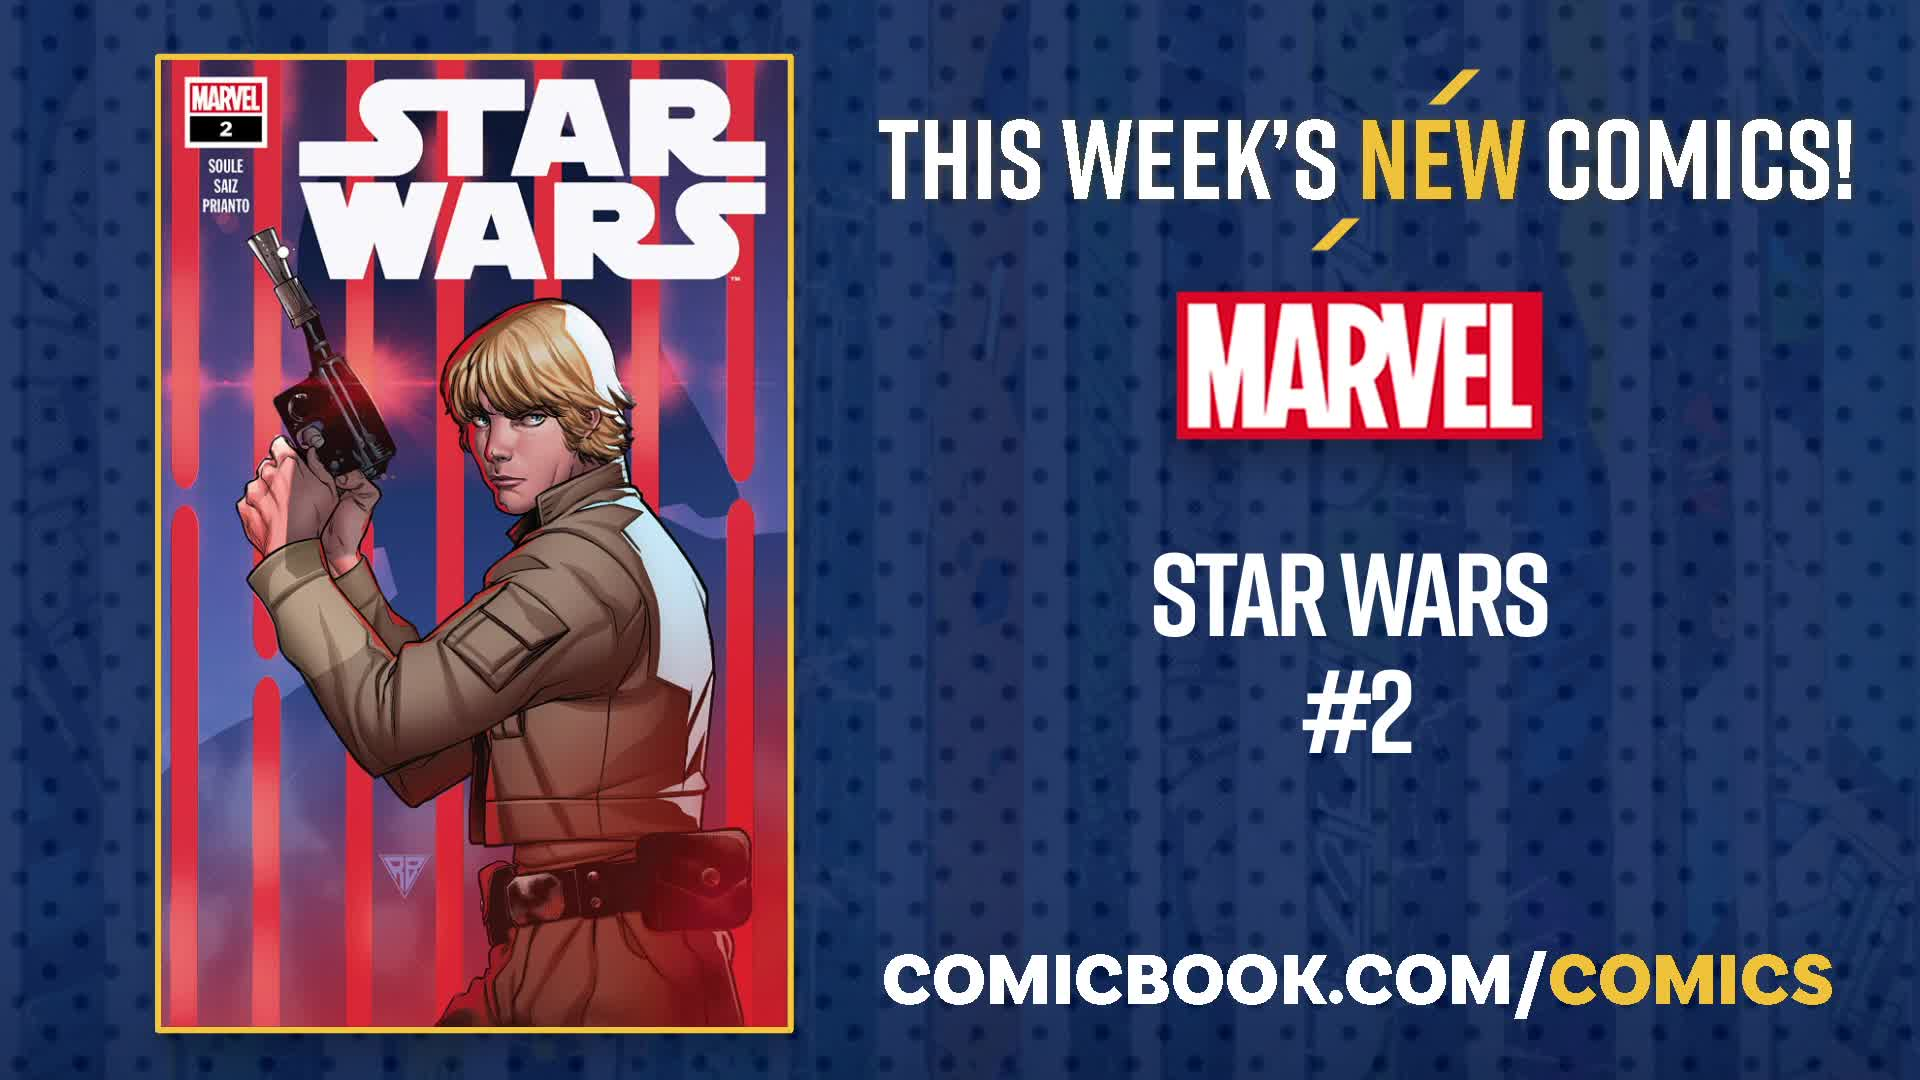 NEW Comics Out This Week - January 29, 2020 screen capture